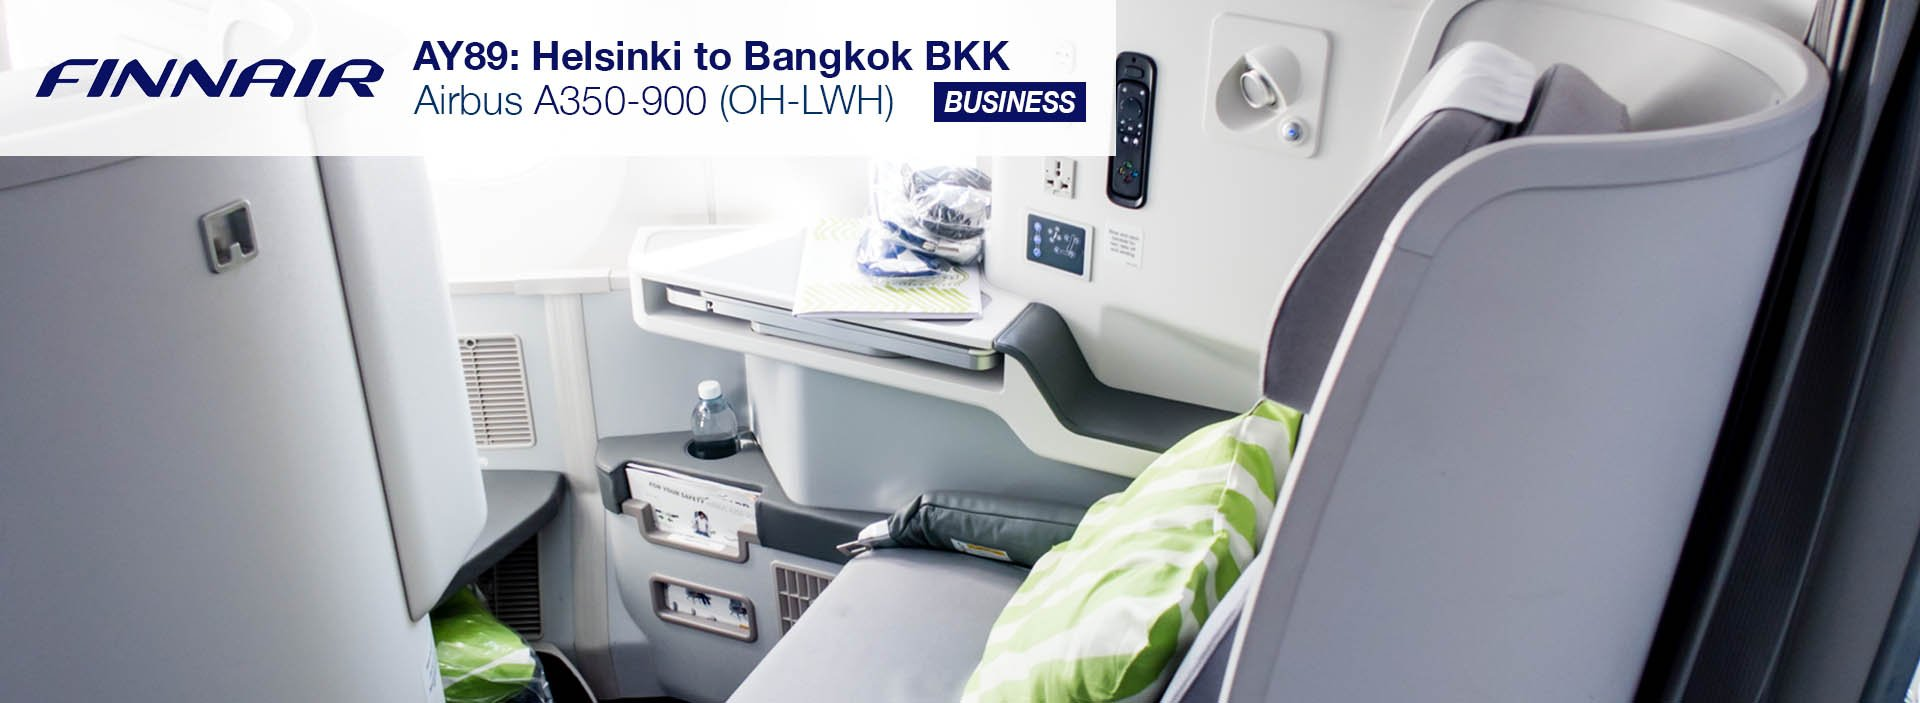 Finnair A350 Business Class Review (Helsinki to Bangkok)